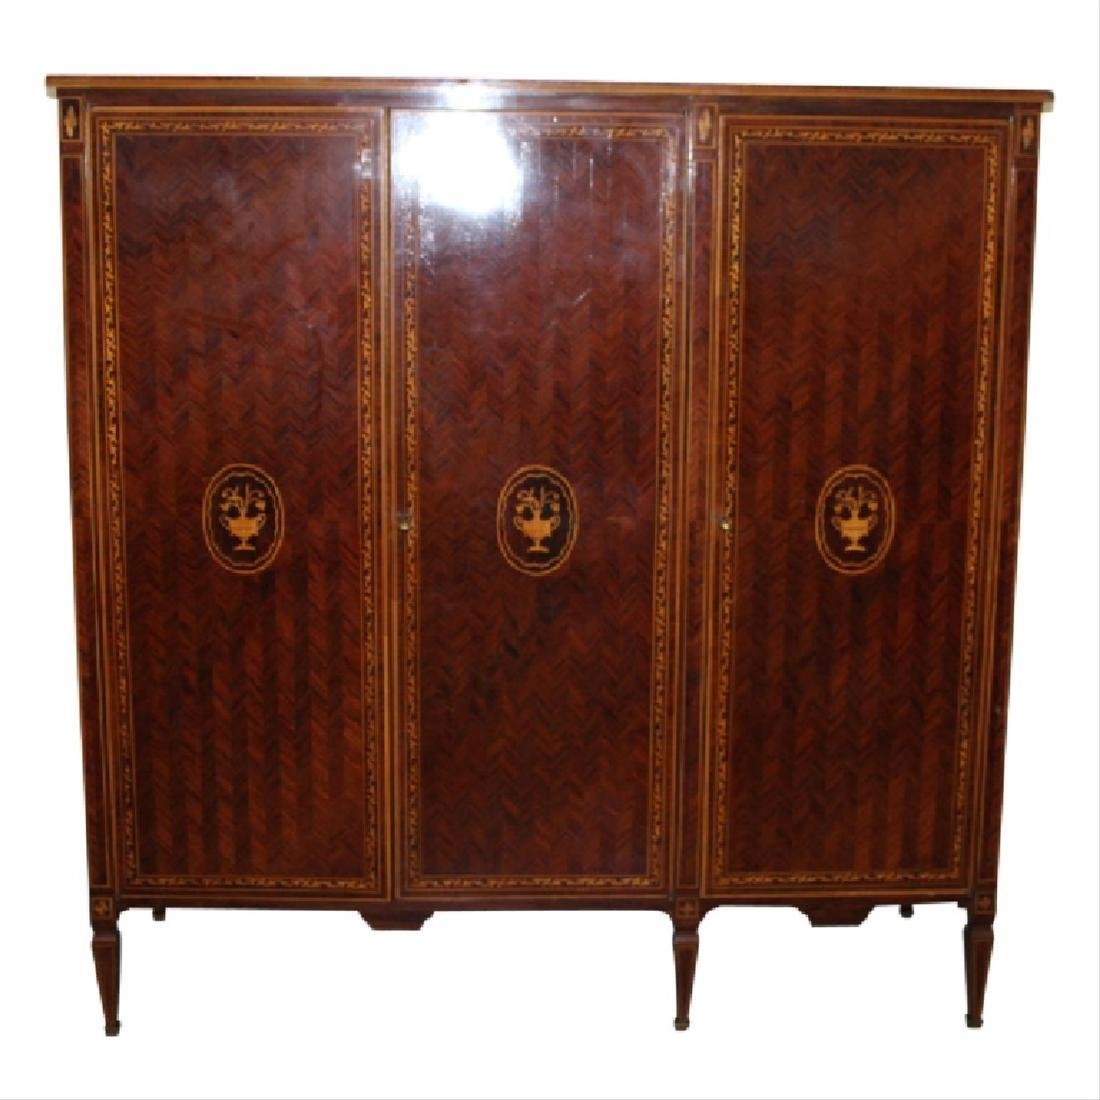 Inlaid Armoire w/ Keys